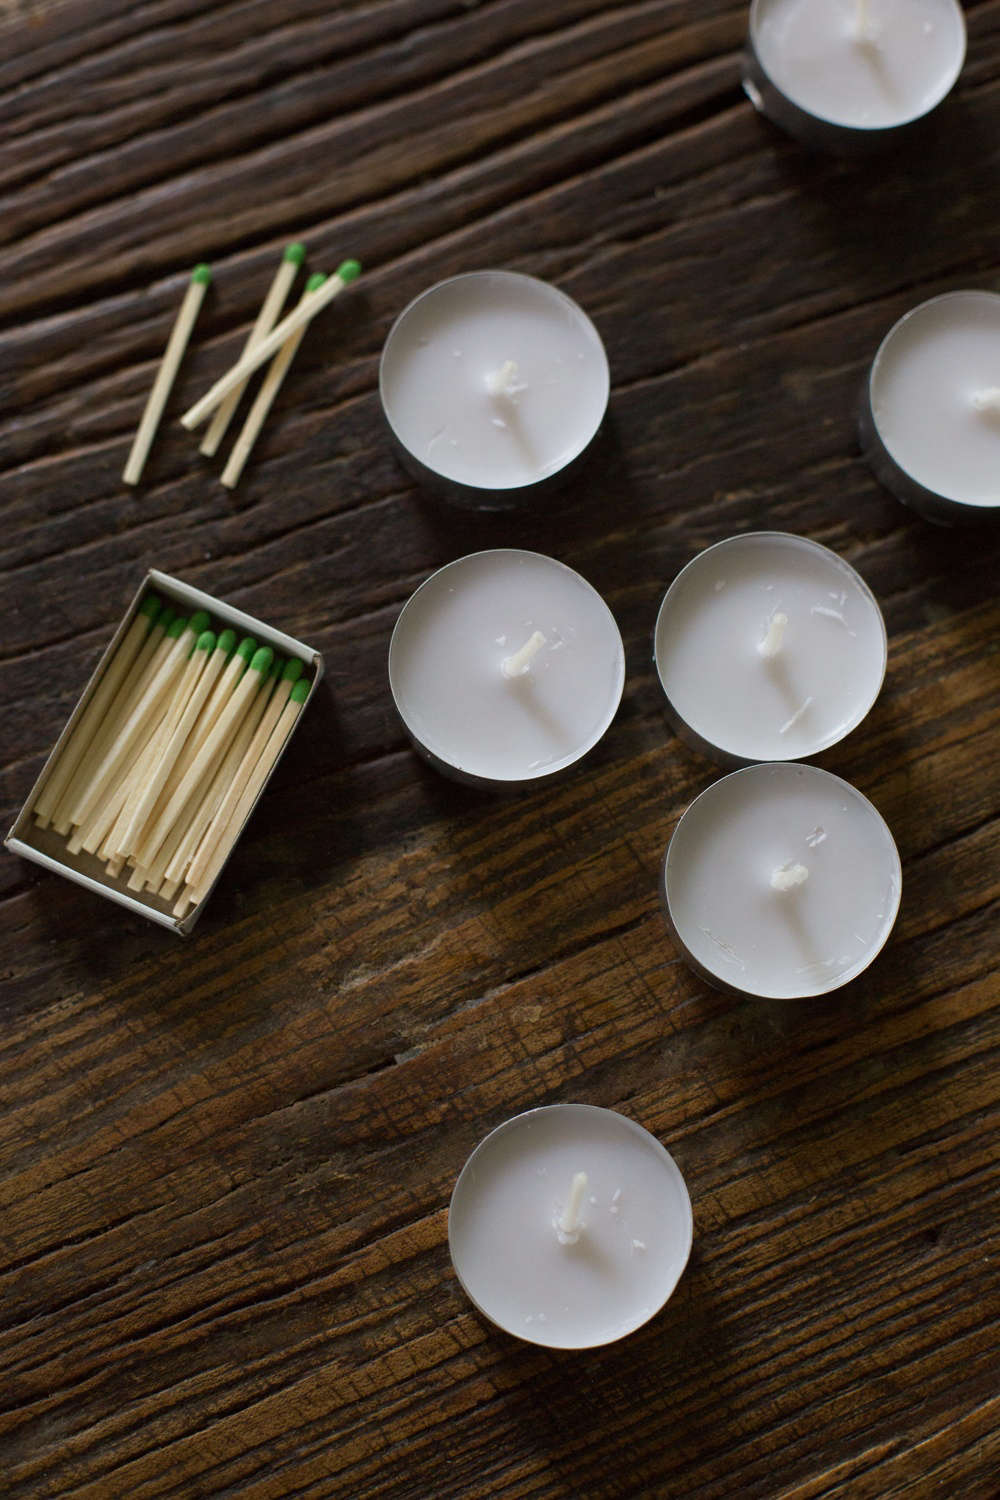 emergency kit candles and matches by Mimi Giboin